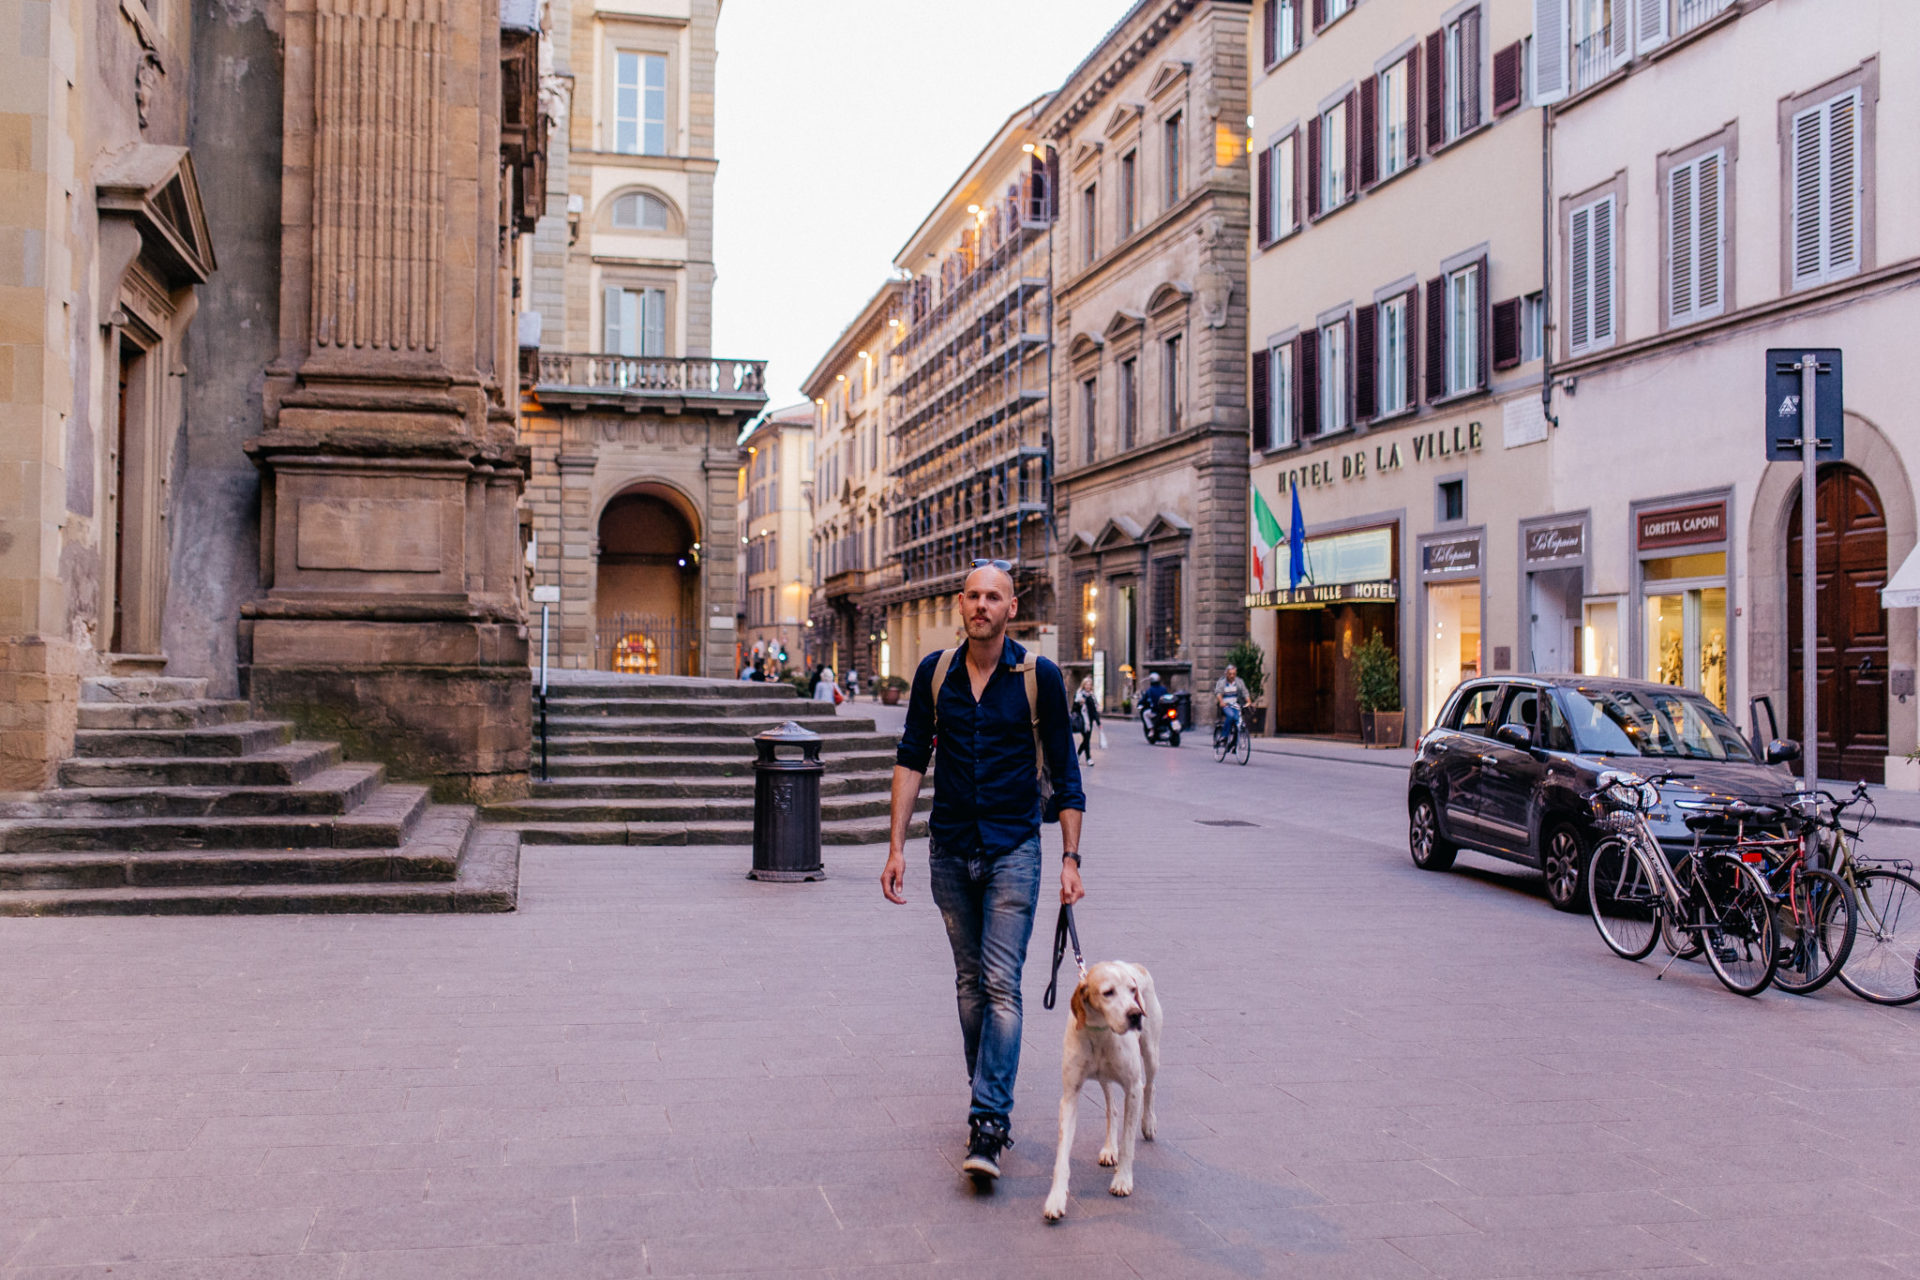 wedding photographer tuscany-italy road trip with dog-explore florence by foot